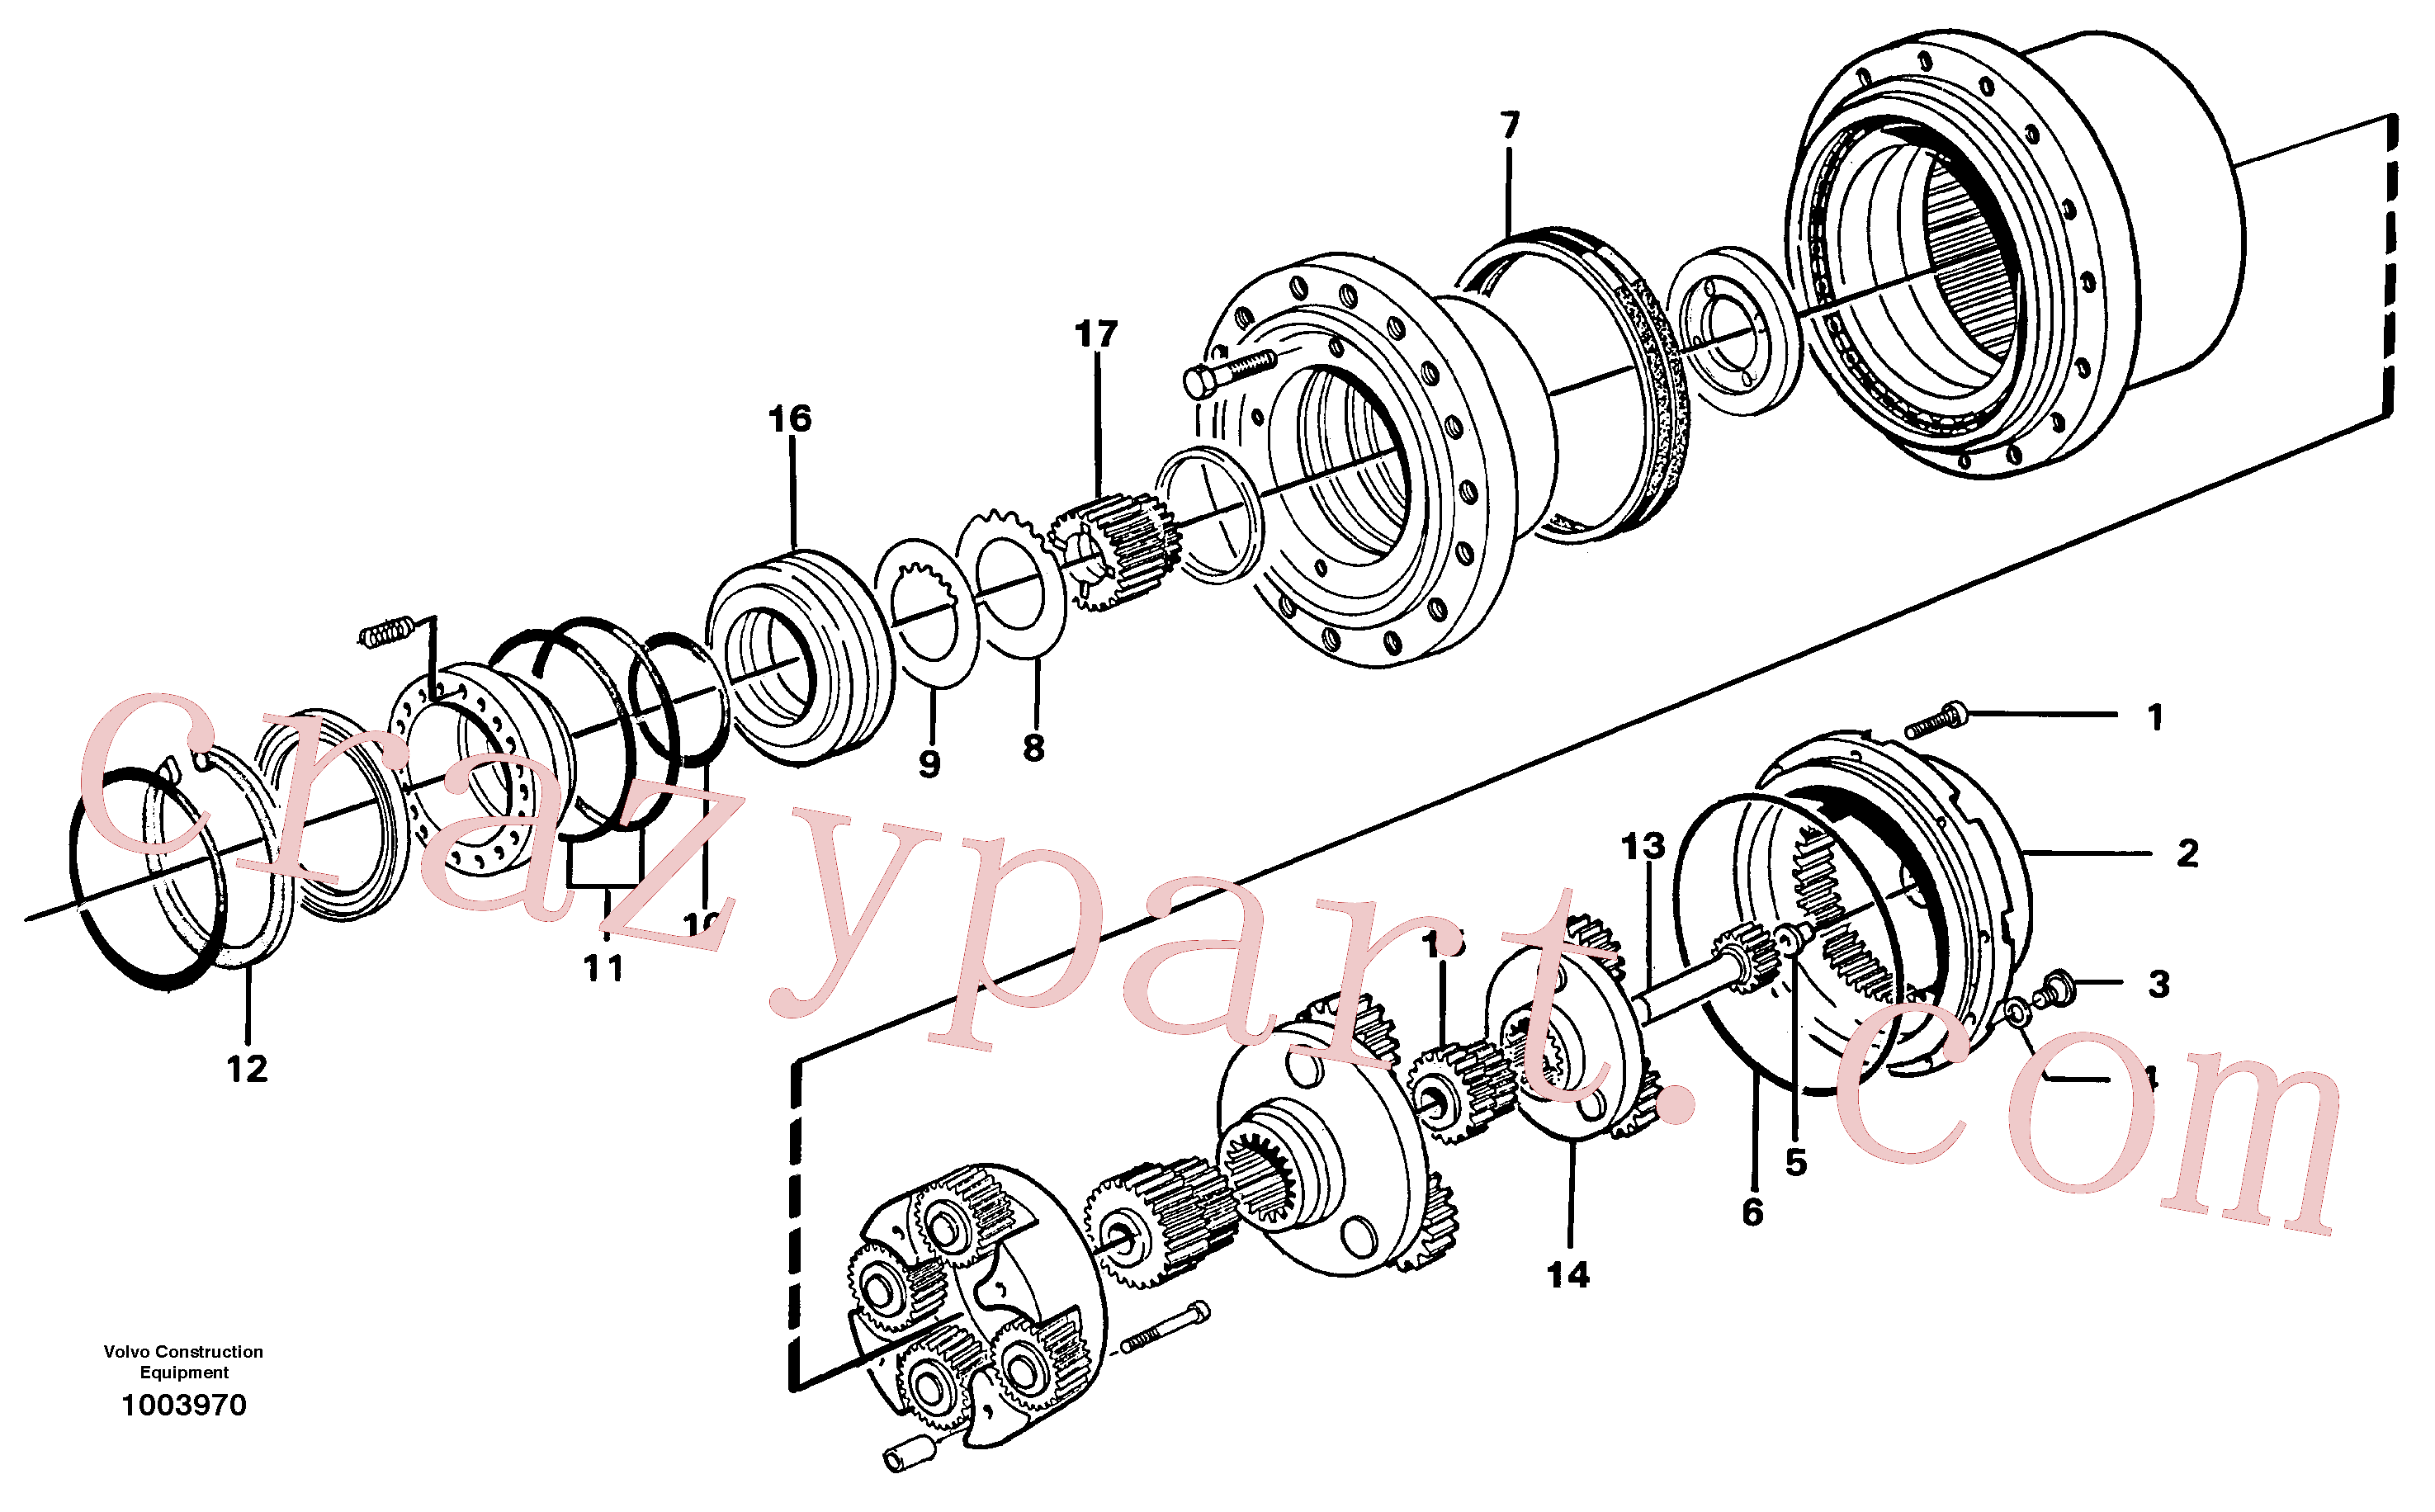 VOE14262906 for Volvo Planetary drive(1003970 assembly)